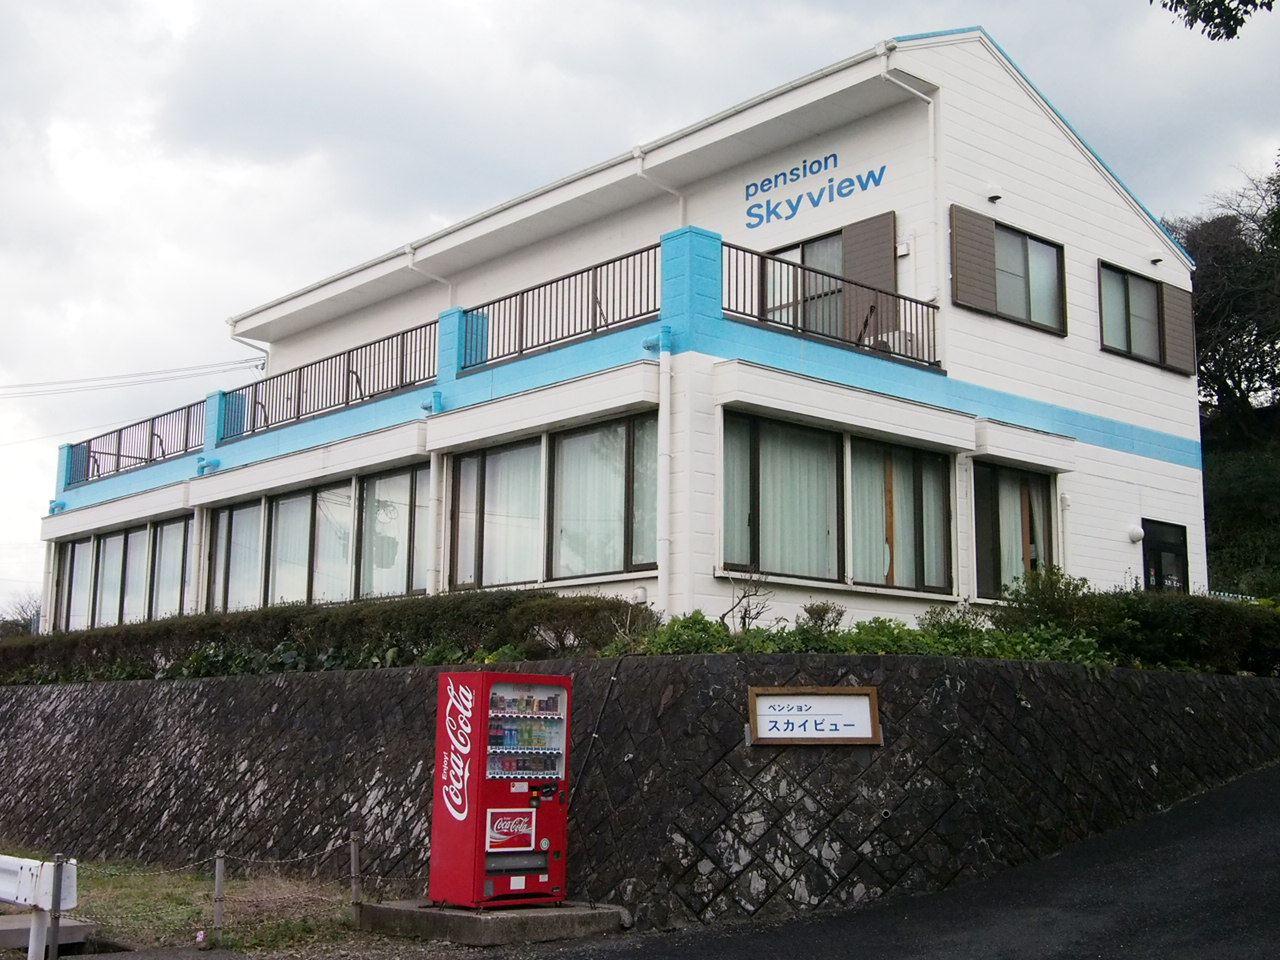 Skyview Pension